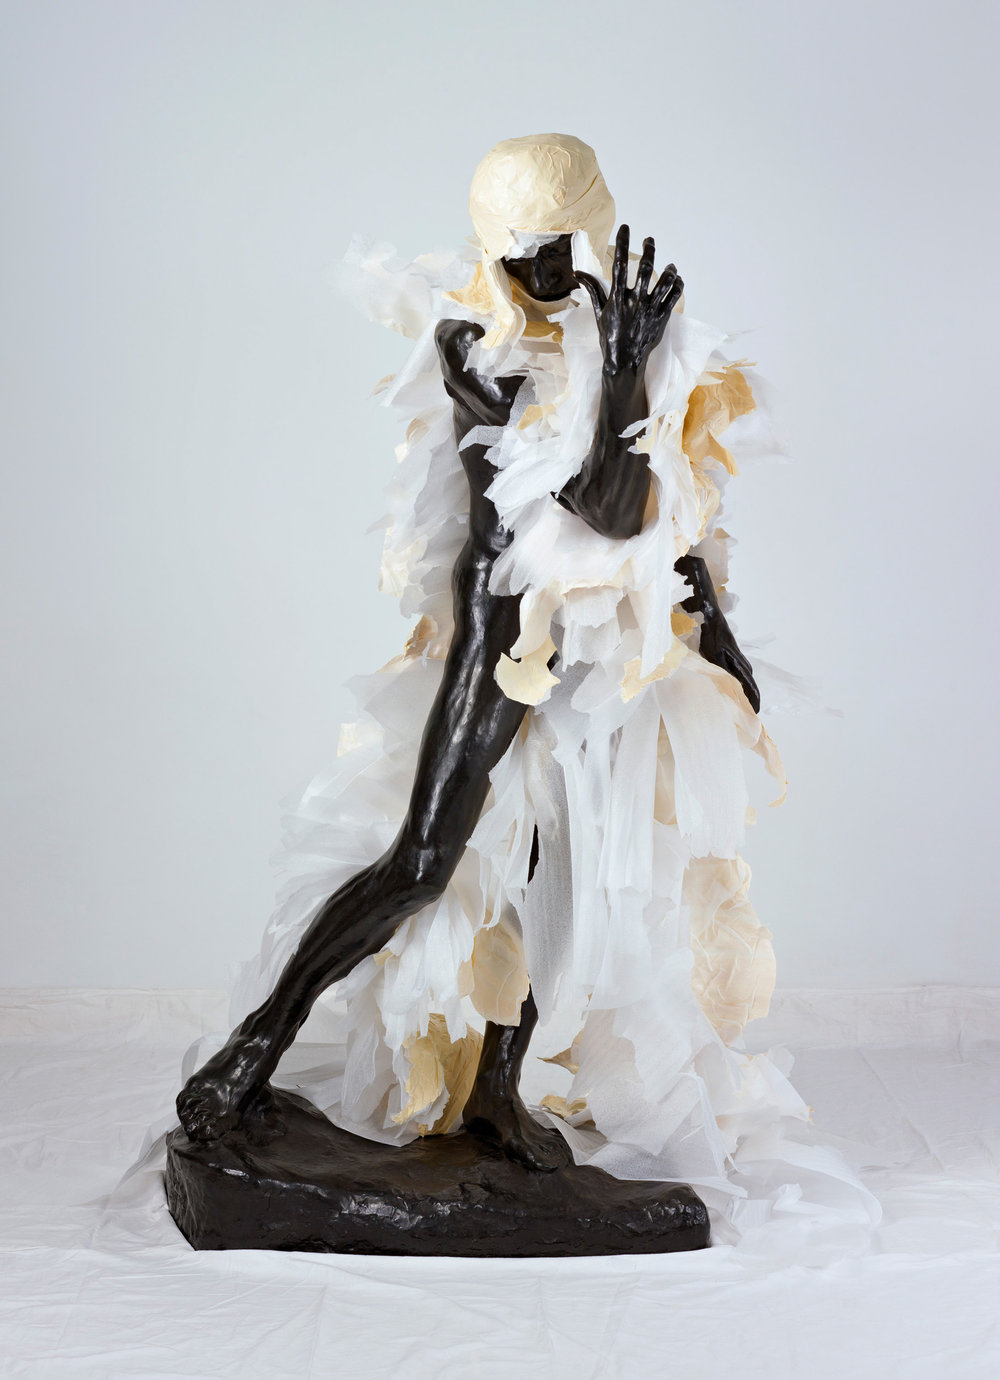 Unwrapping Rodin (White) 6   2010, colour photograph 127 x 175 cm / 50 x 69 in. Edition of 2